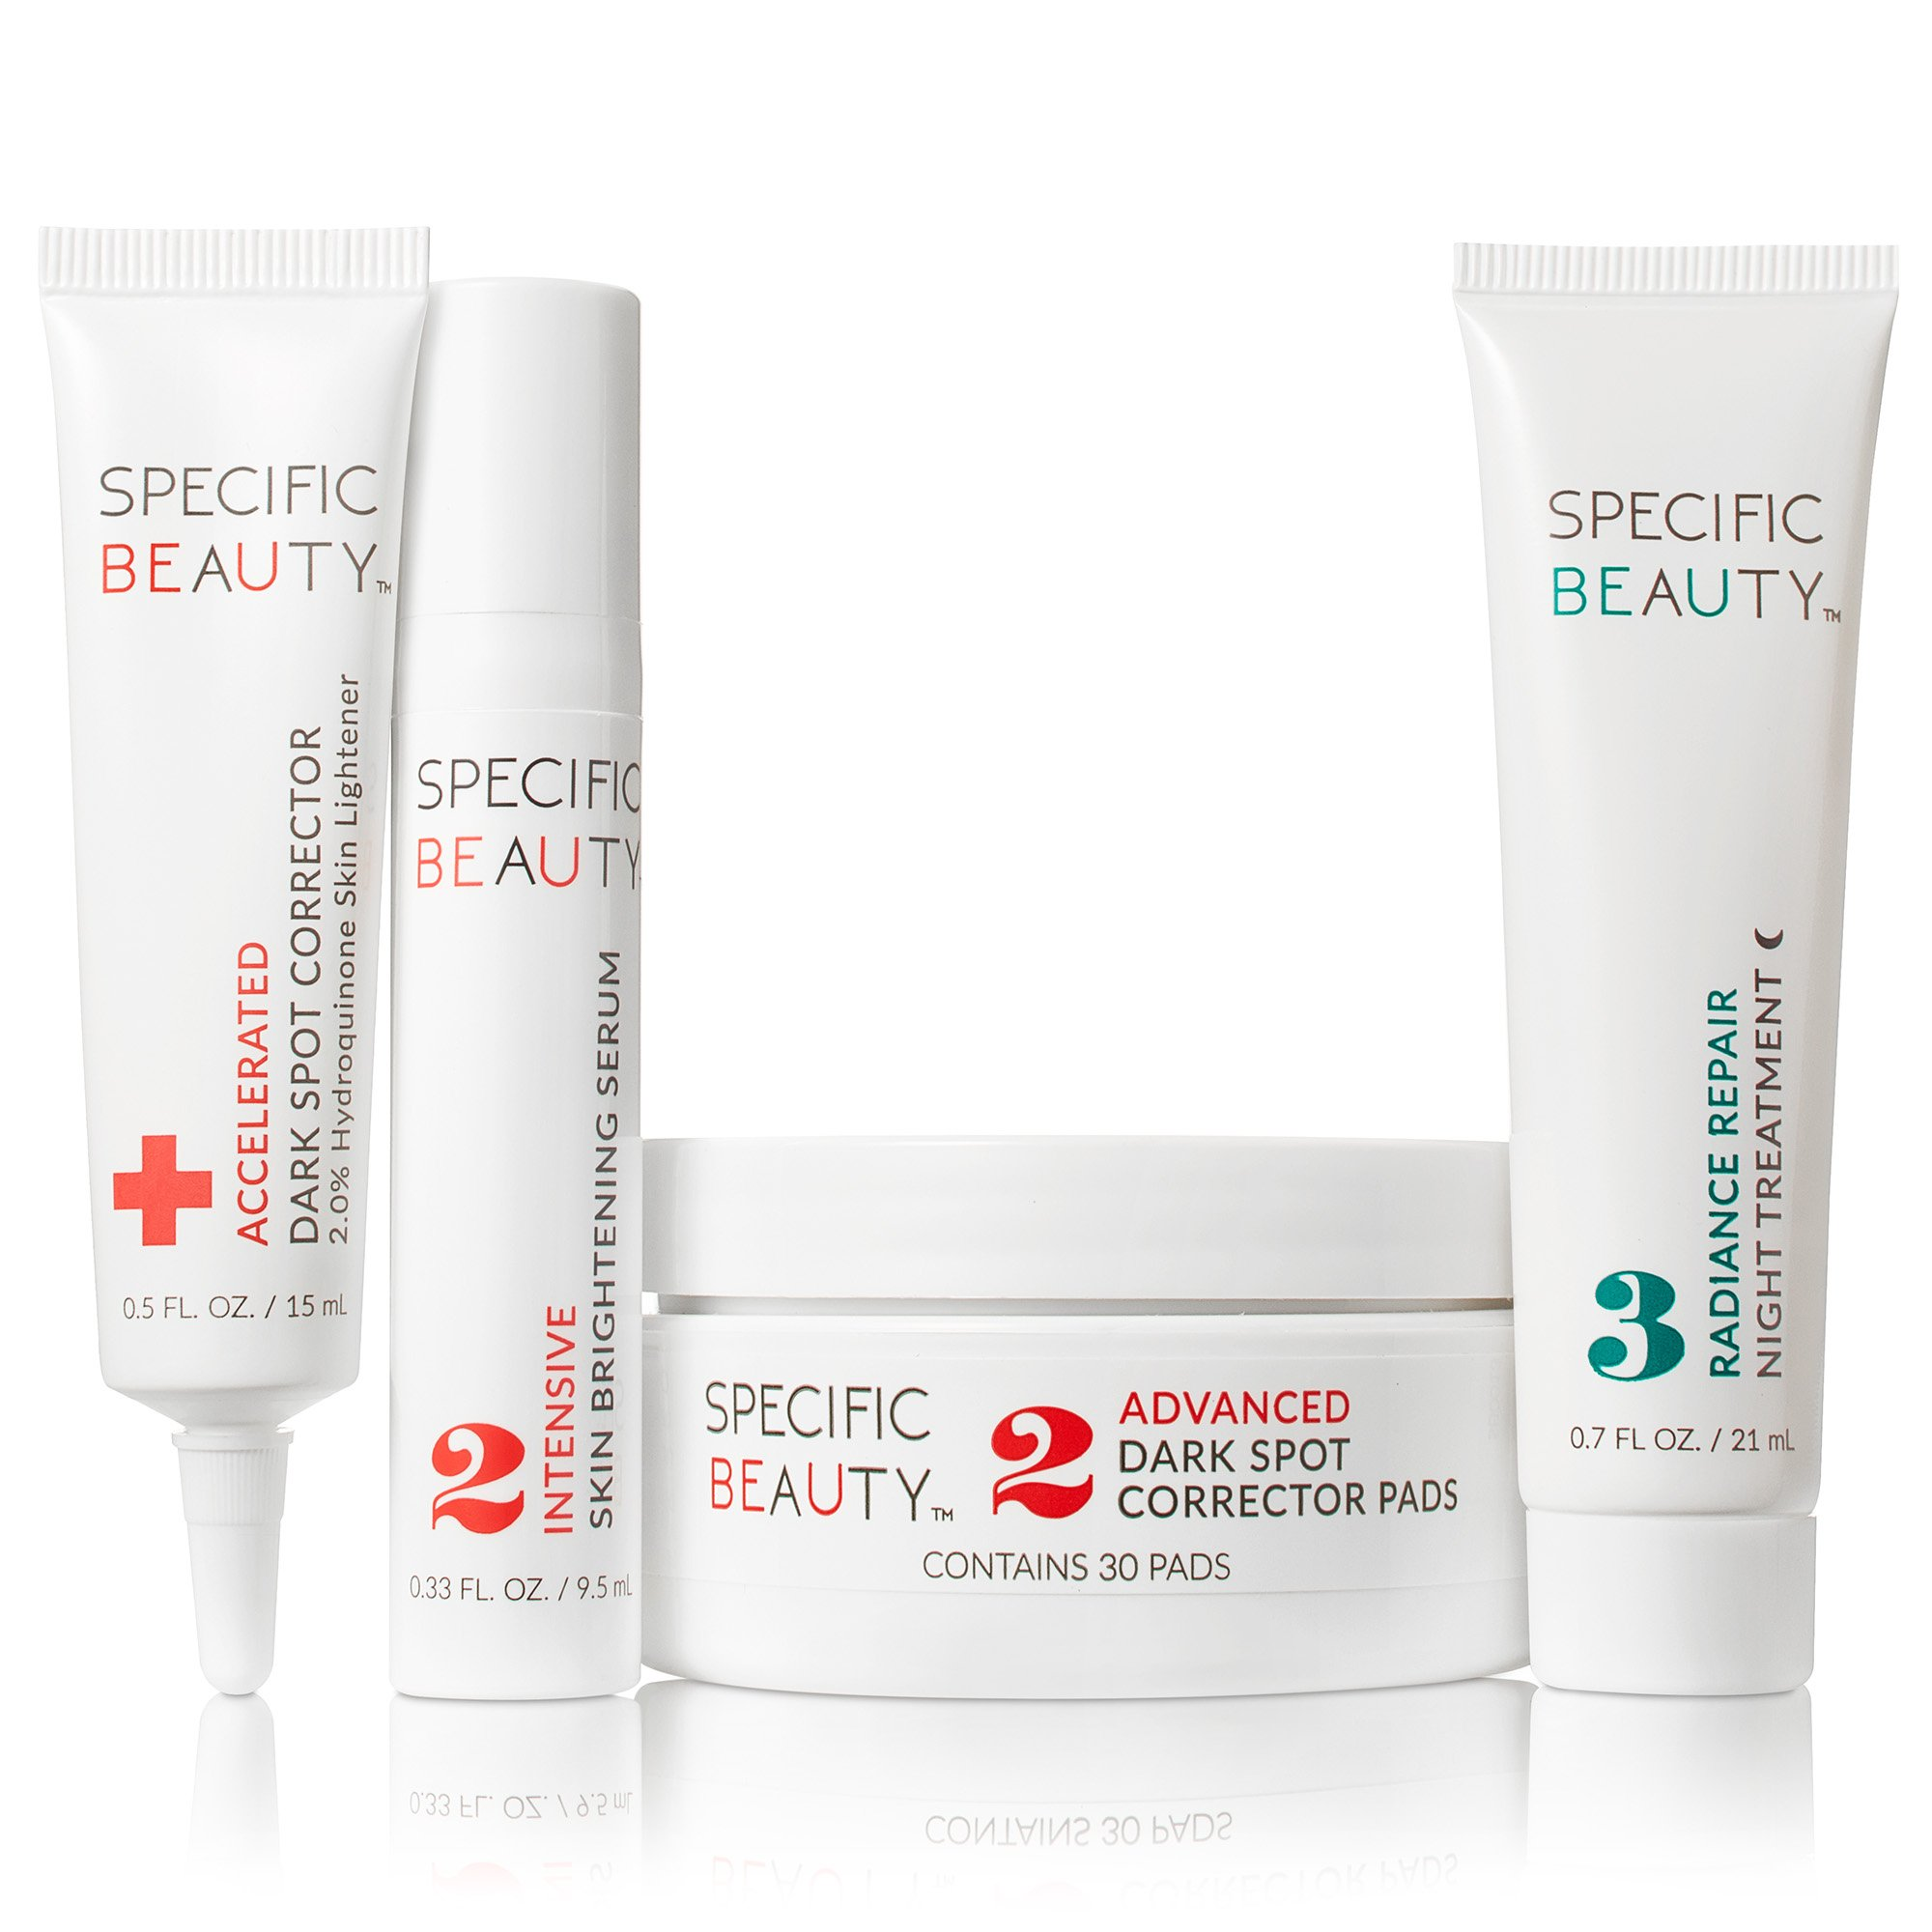 Specific Beauty - Overnight Targeted-Treatment Evening System - Starter Kit/30 Day Supply by Specific Beauty